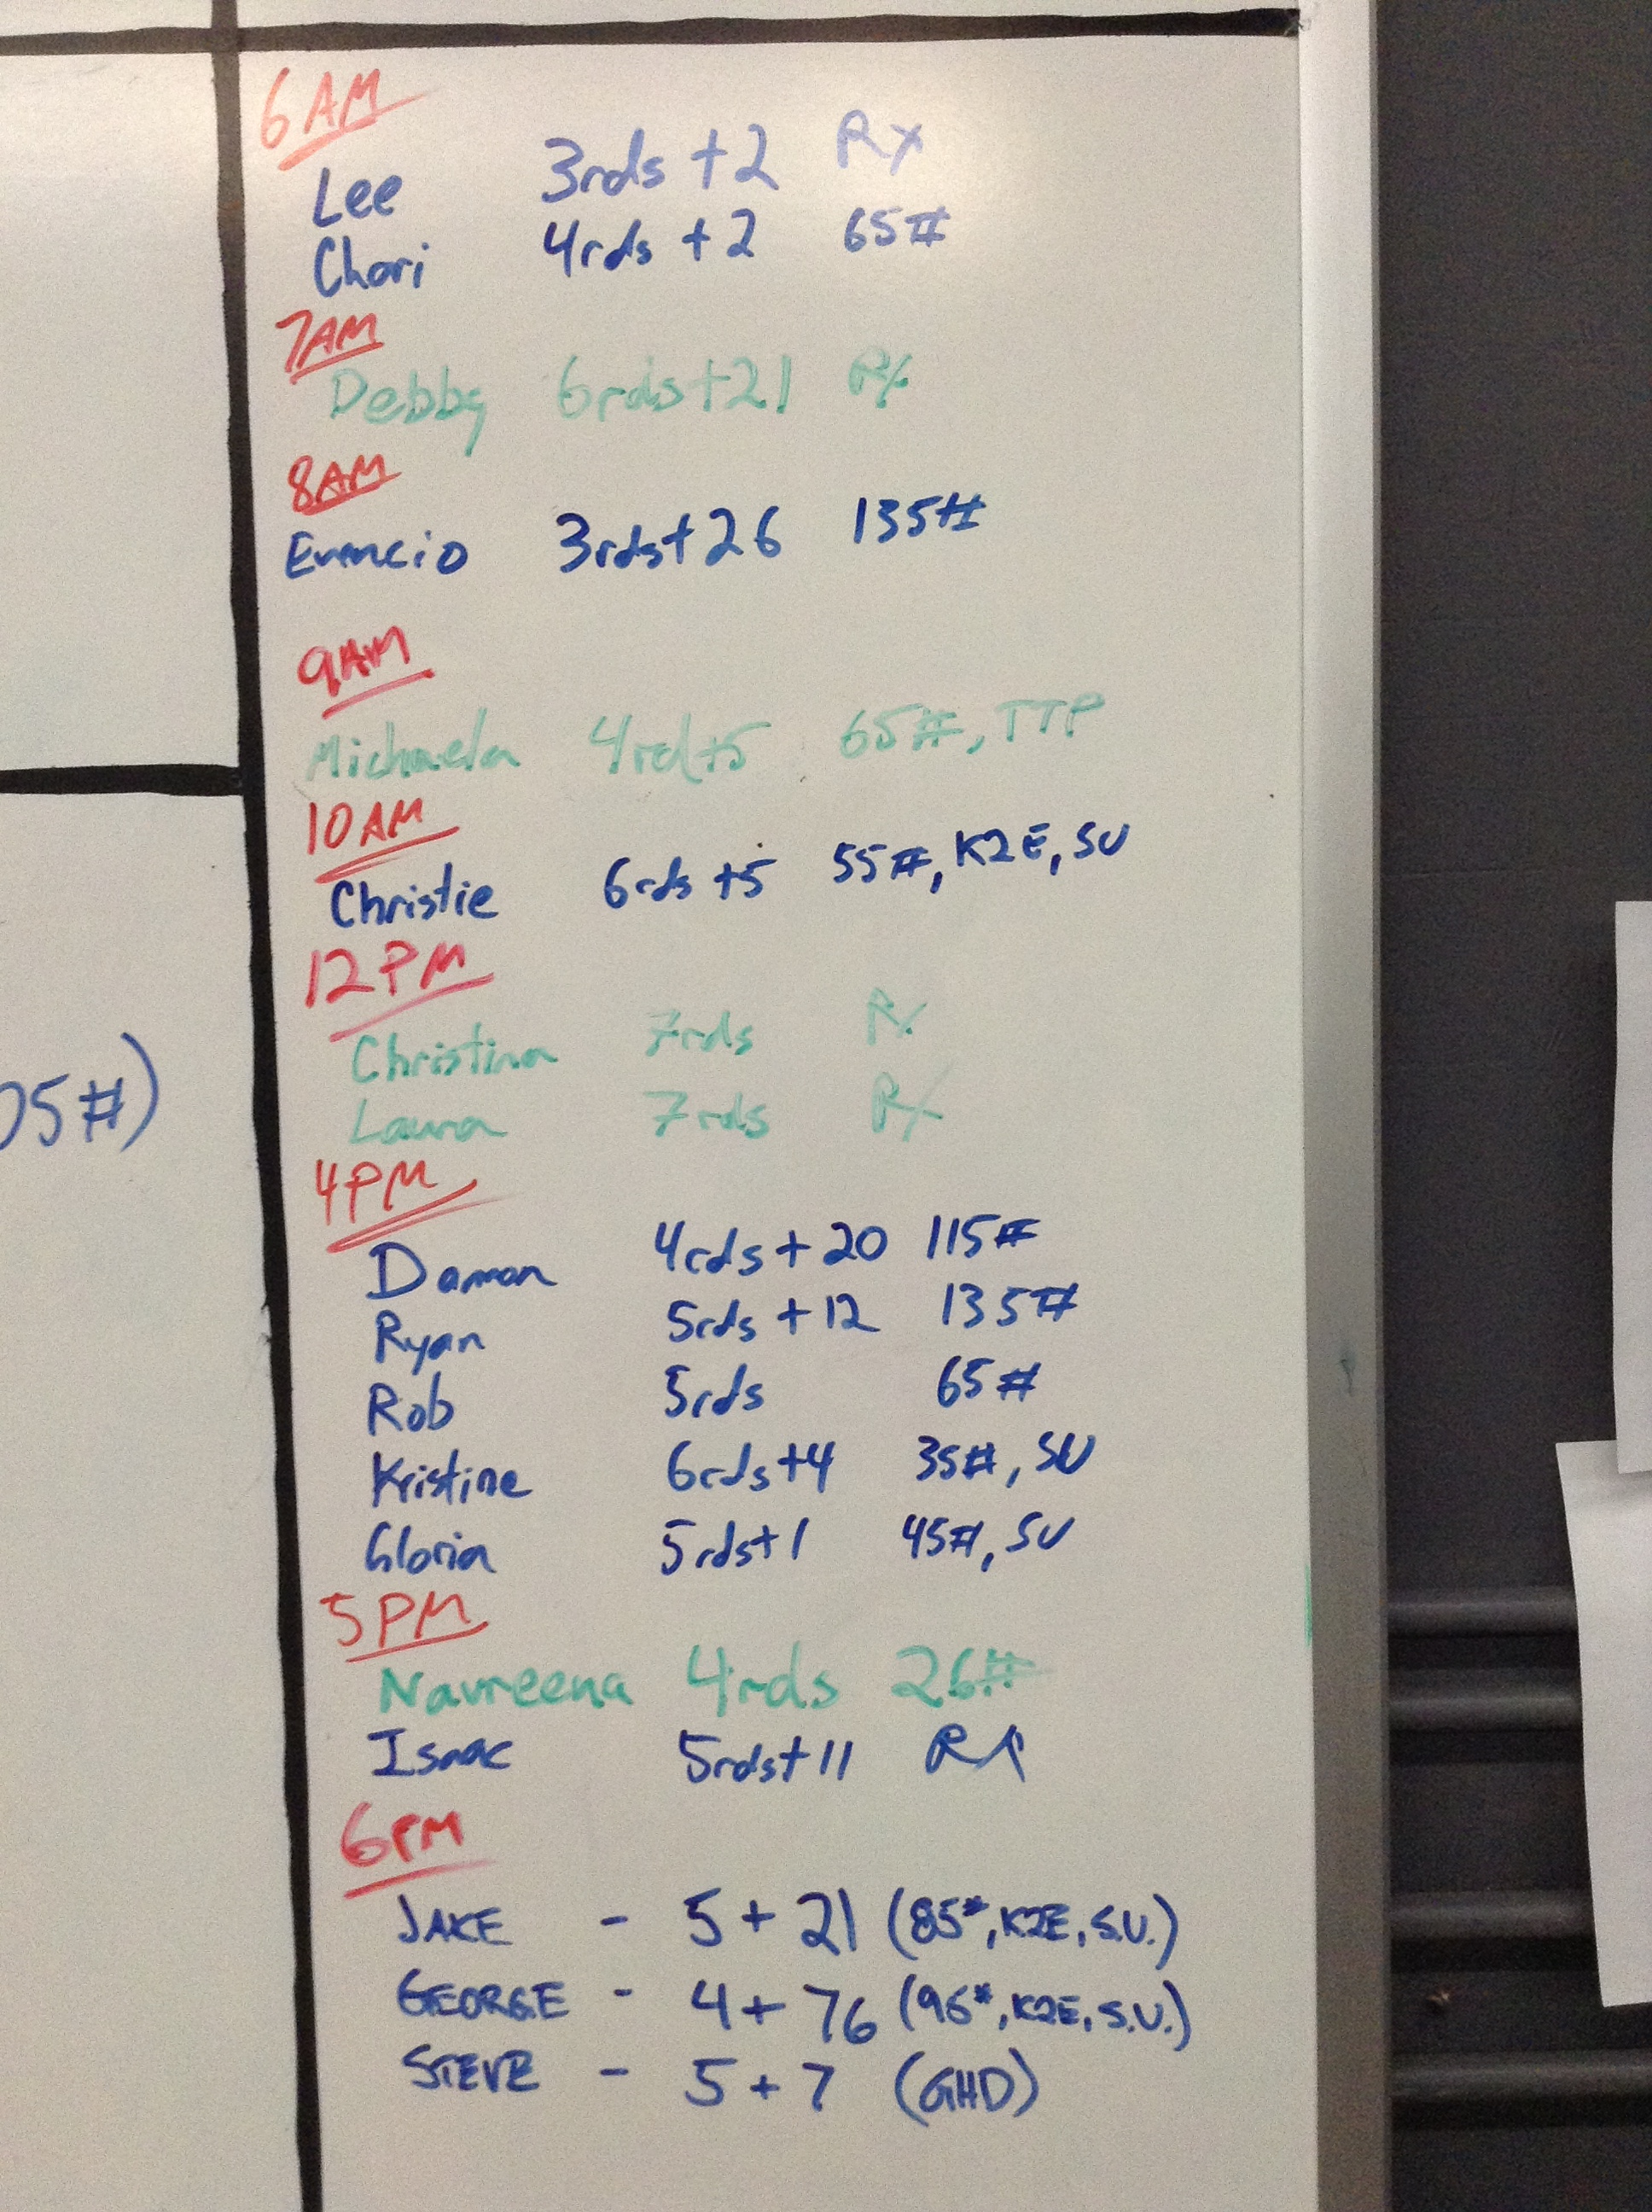 Mar 11 WOD Results